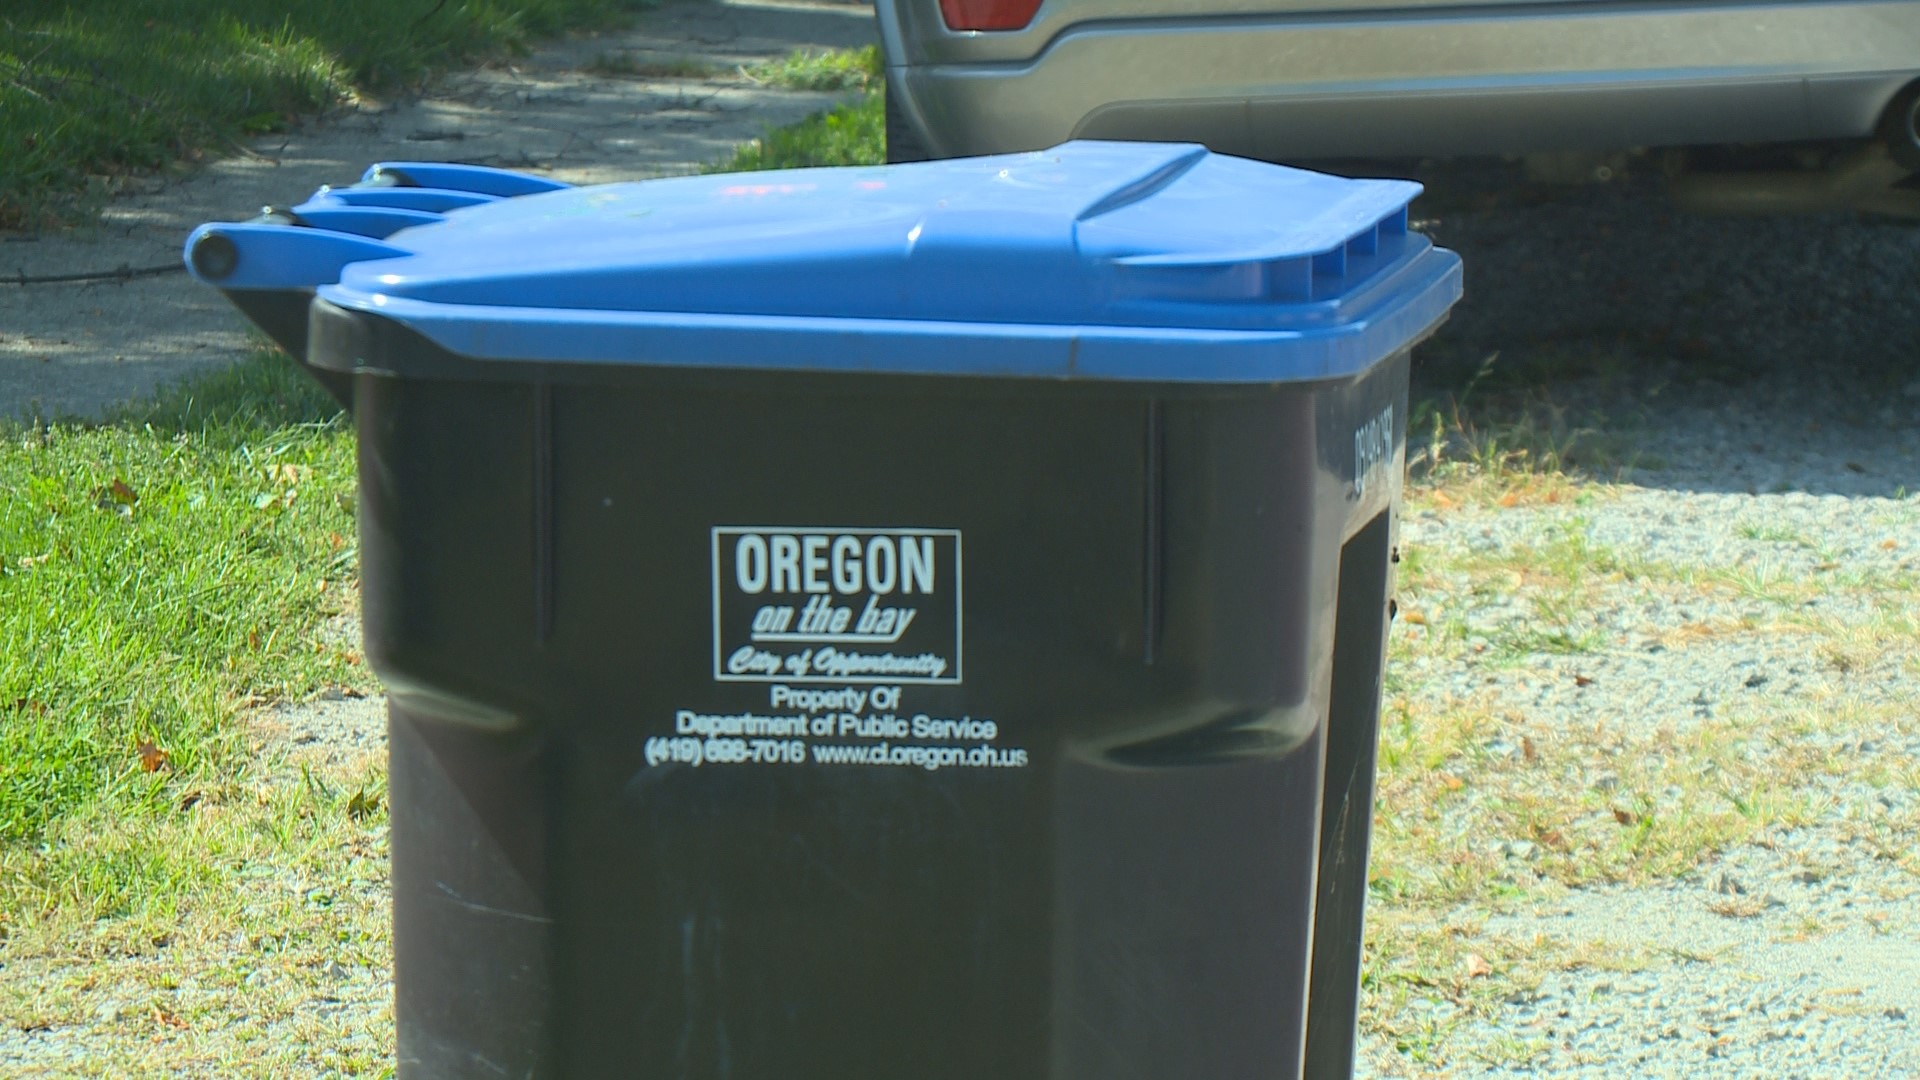 Dems Attempt to Codify 'Equity' in Oregon Recycling Bill | Critical Thinking